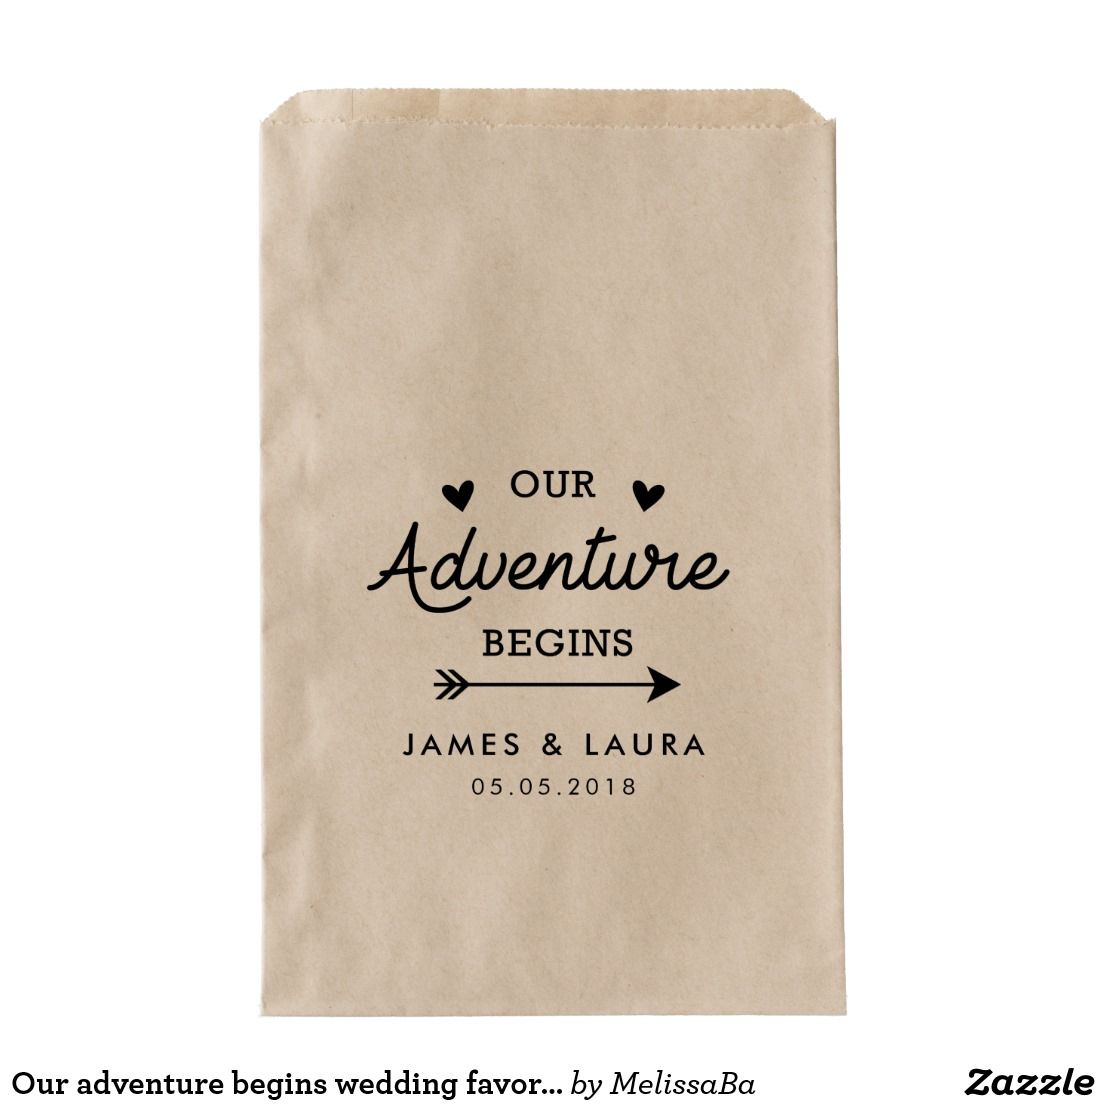 Our adventure begins wedding favour bag | Wedding favor bags